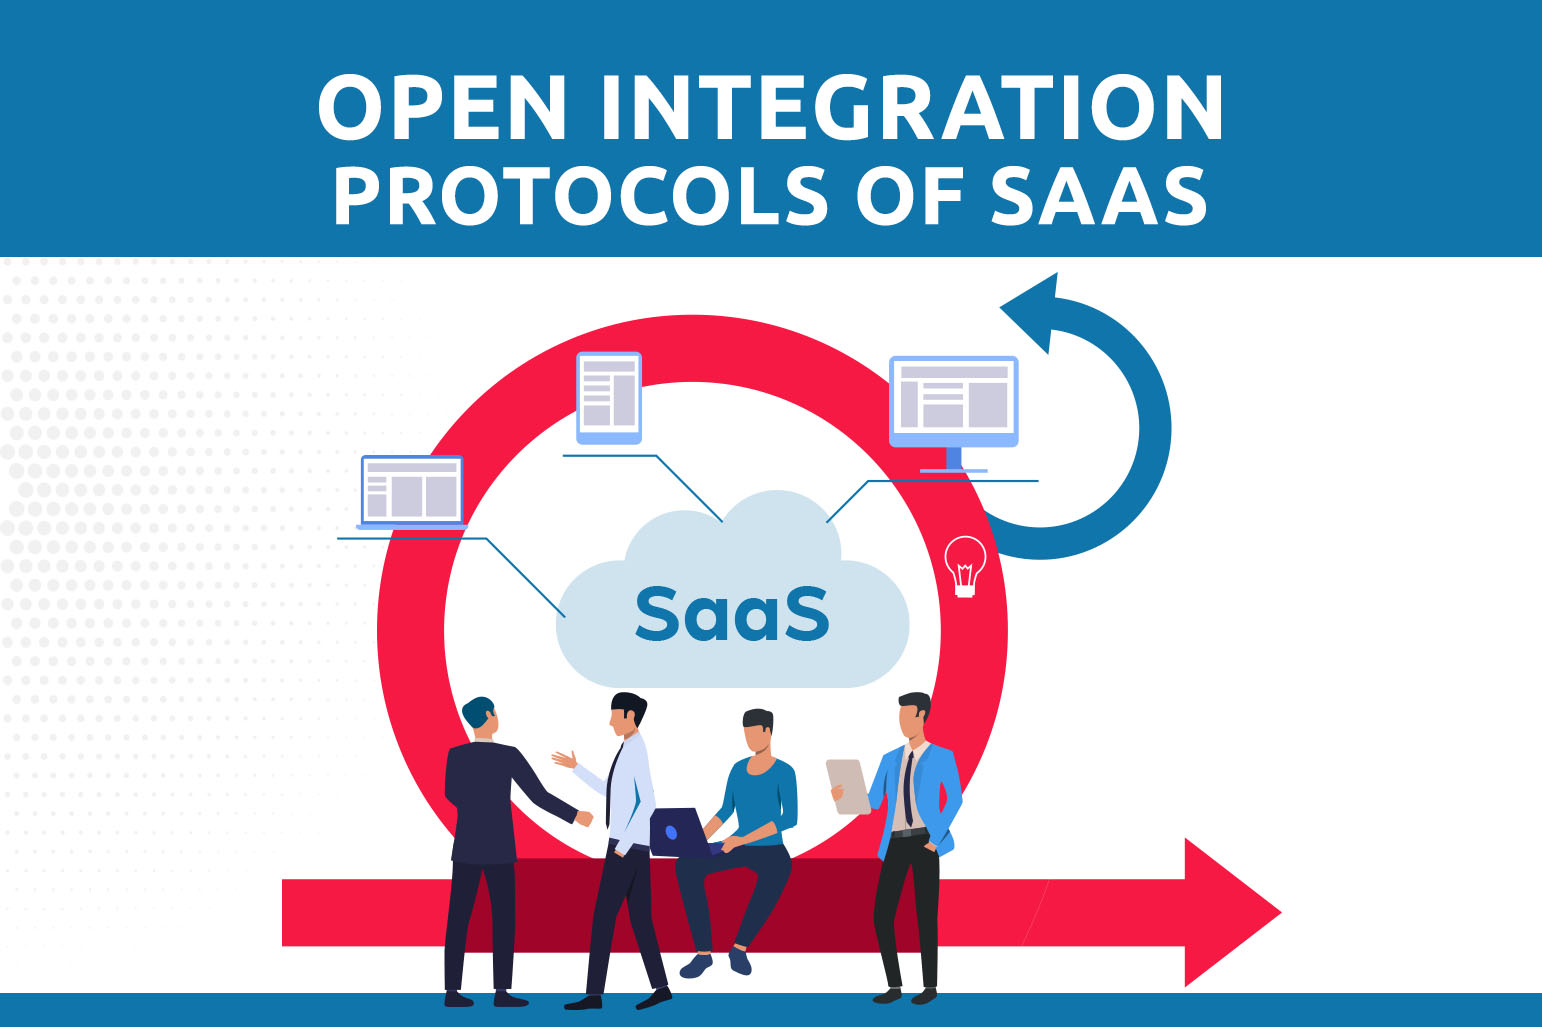 Open Integration Protocols Of SAAS